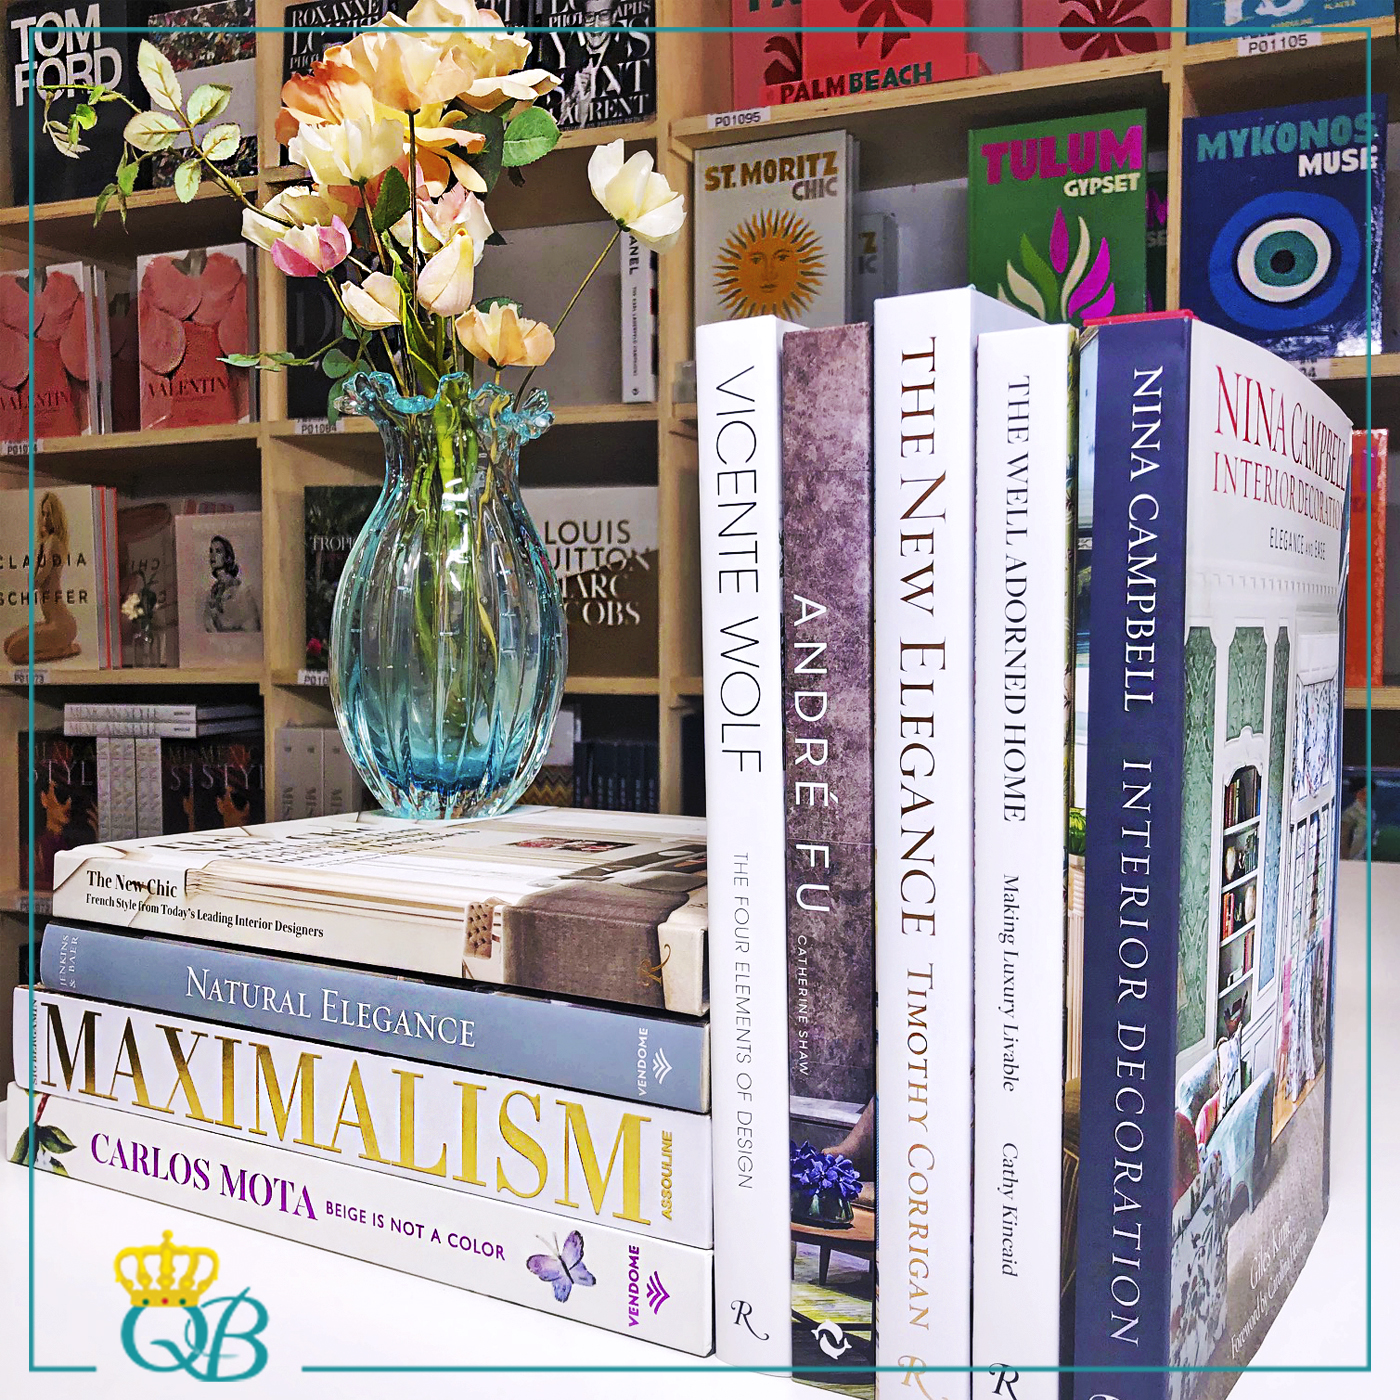 Livros: Beige in Not a Color, Maximalism: Sig Bergamin, Natural Elegance, The New Chic, The Four Elements of Design, André Fu: Crossing Cultures With Design, The New Elegance, The Well Adorned Home, Nina Campbell: Interior Decoration.